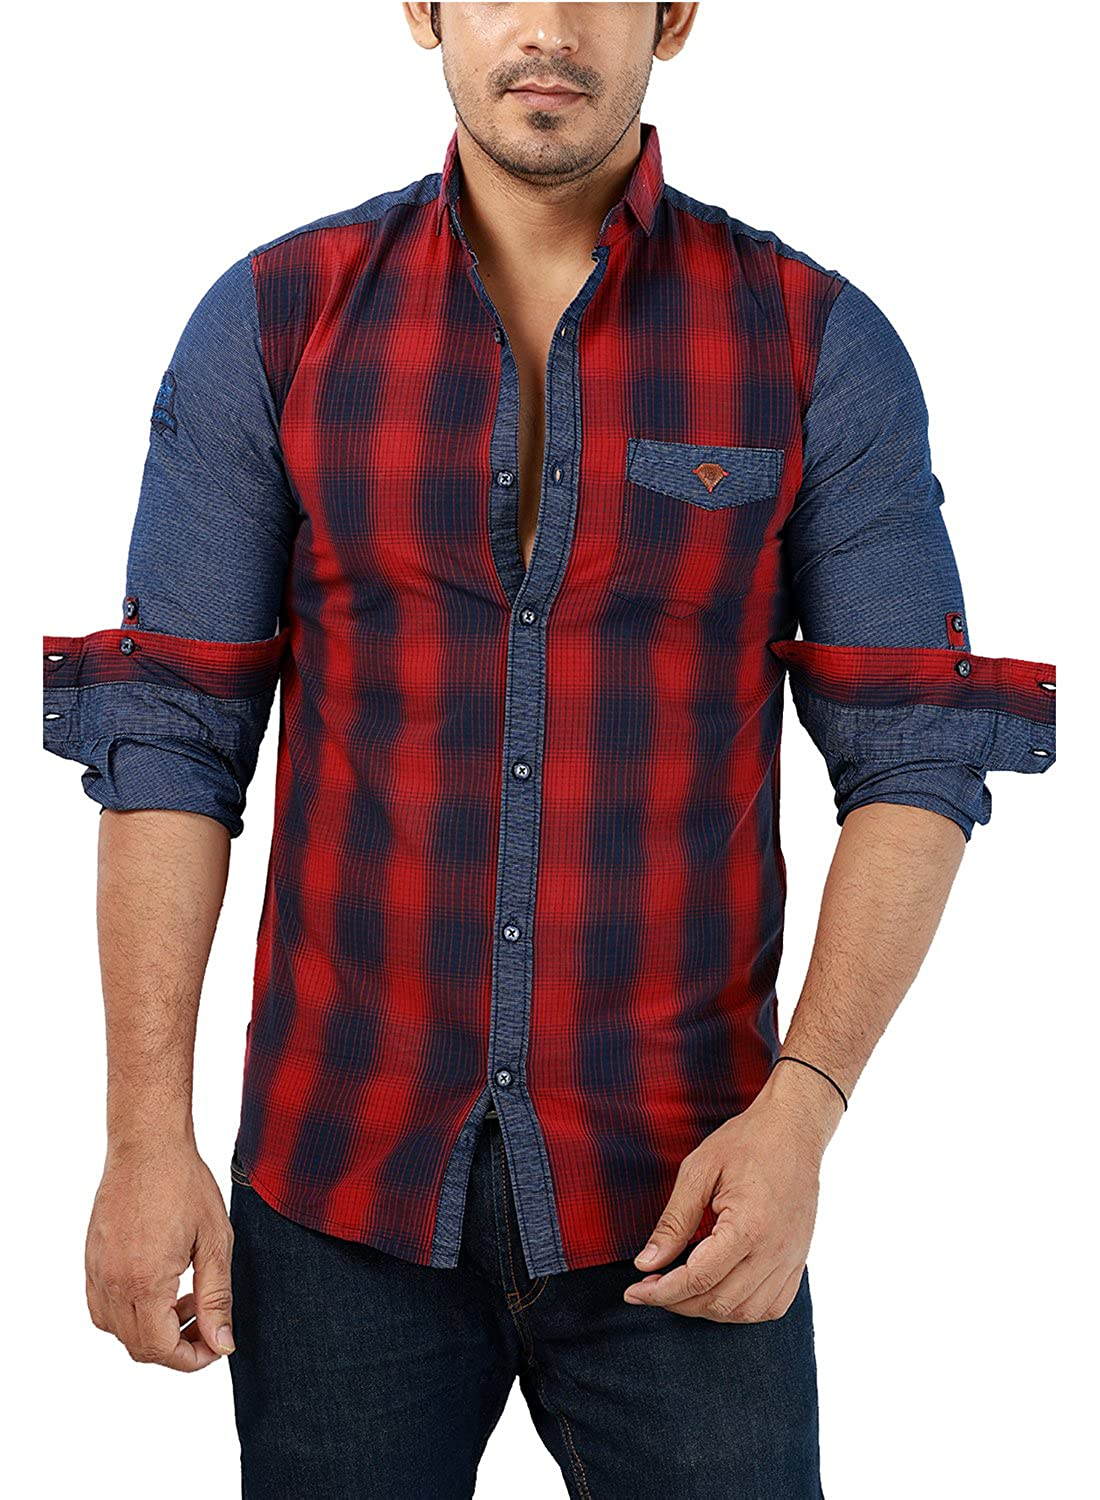 Shirt design gents - Rapphael Full Sleeve Slim Fit Red Checked Shirt For Men